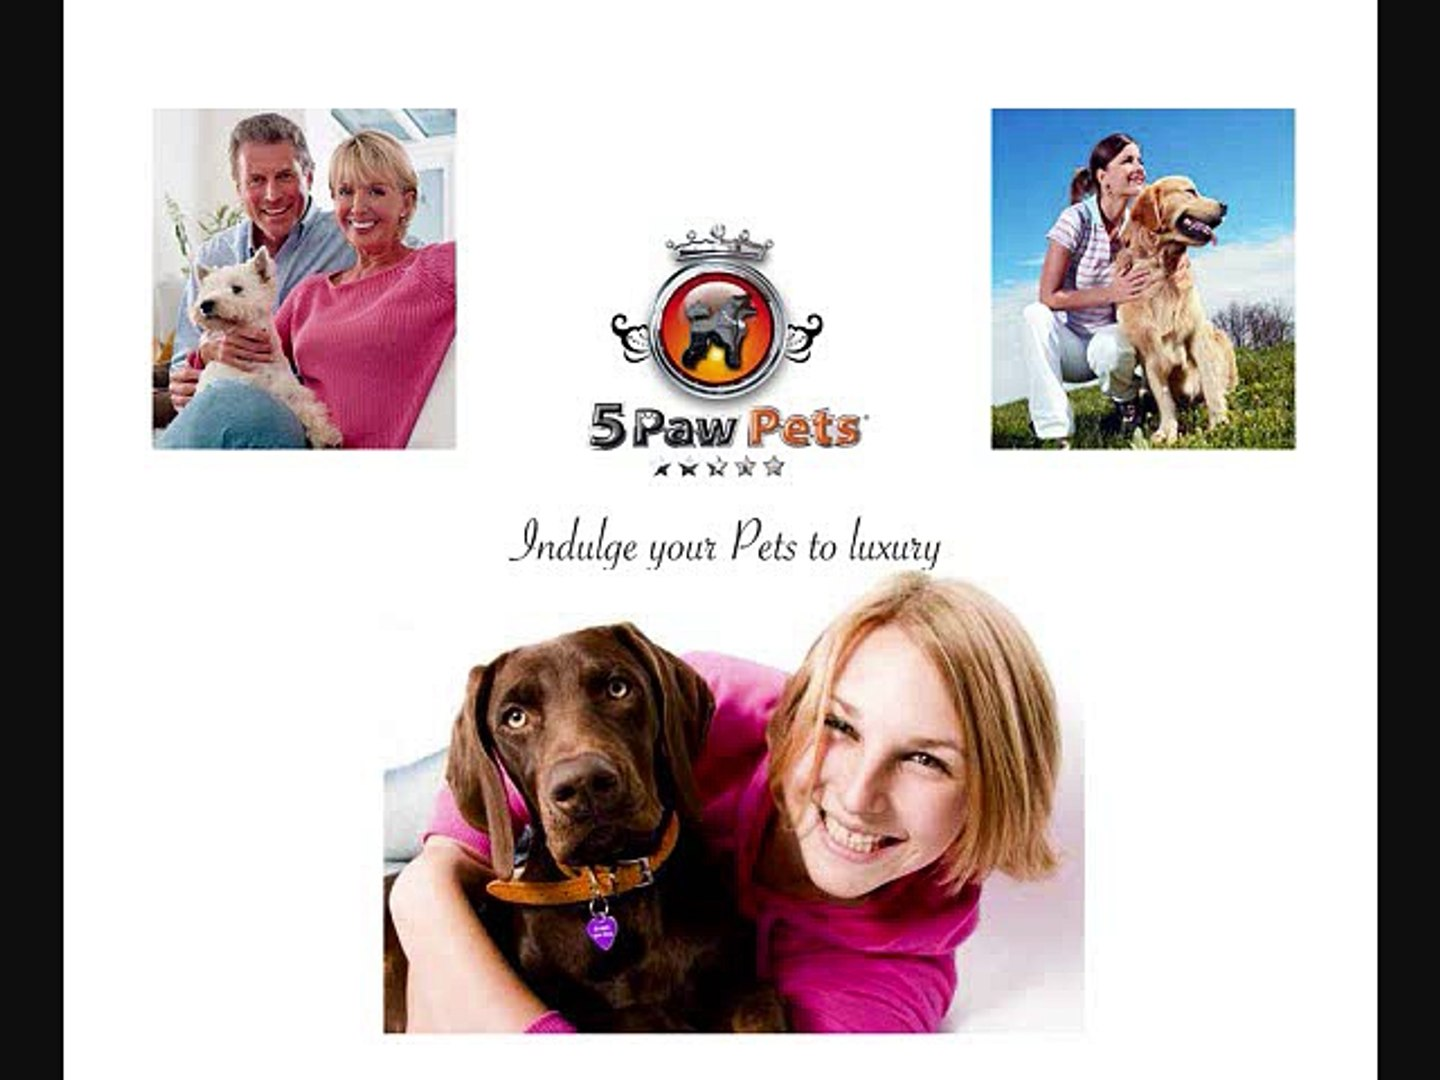 professional pet sitters in hollywood florida | florida  pet sitting  | professsional pet care